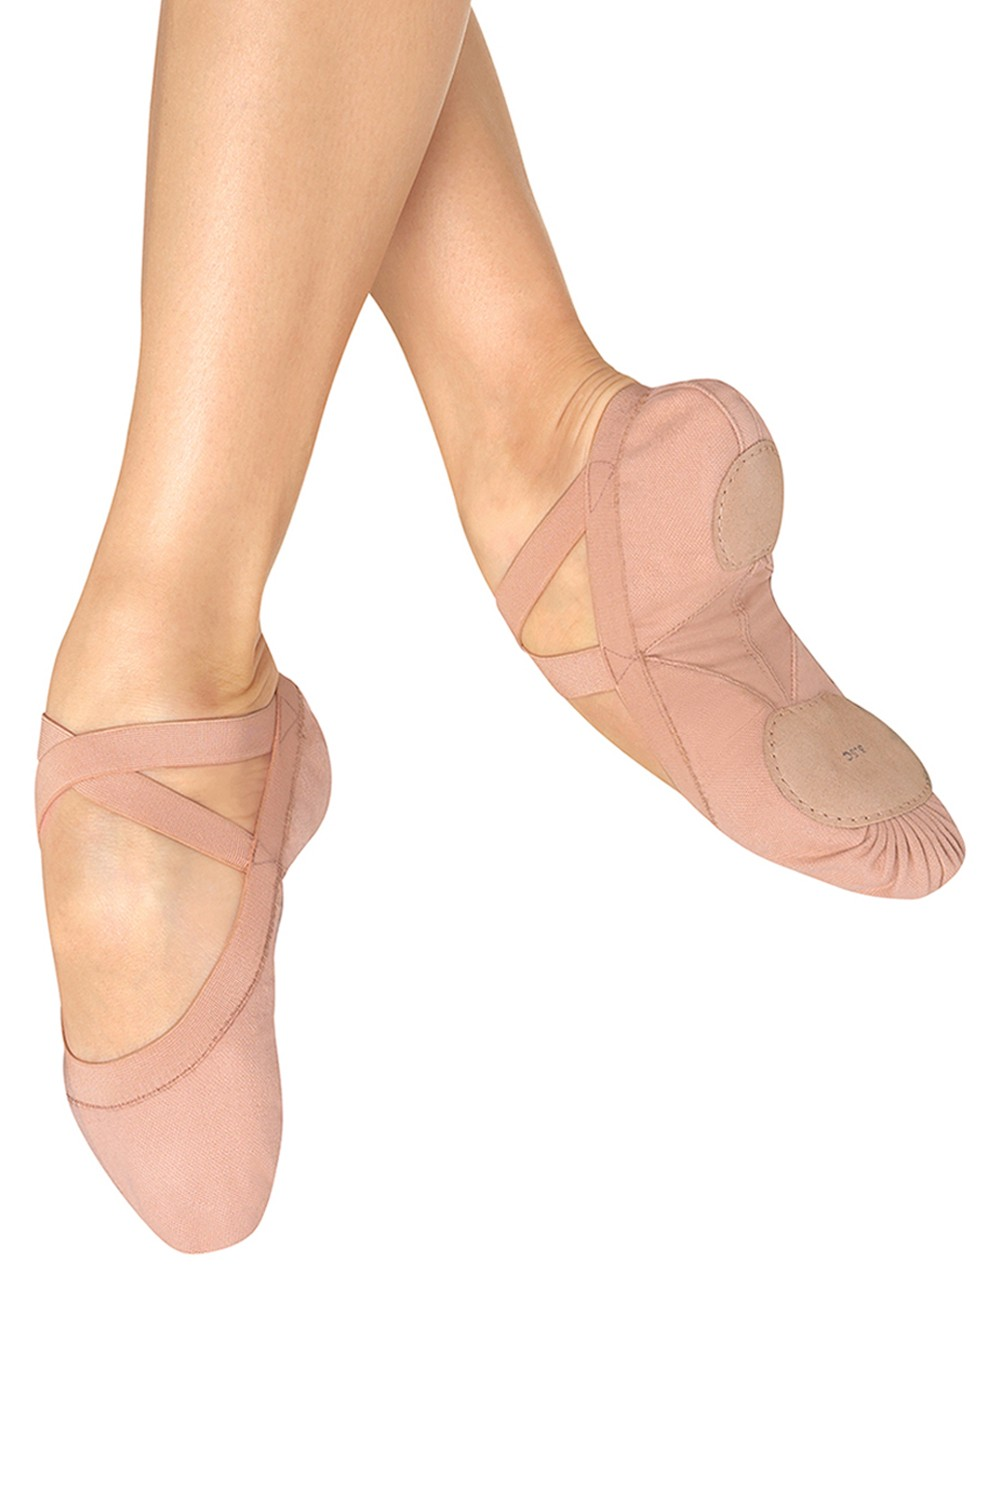 Pro Elastic Ballet Shoe Women's Ballet Shoes